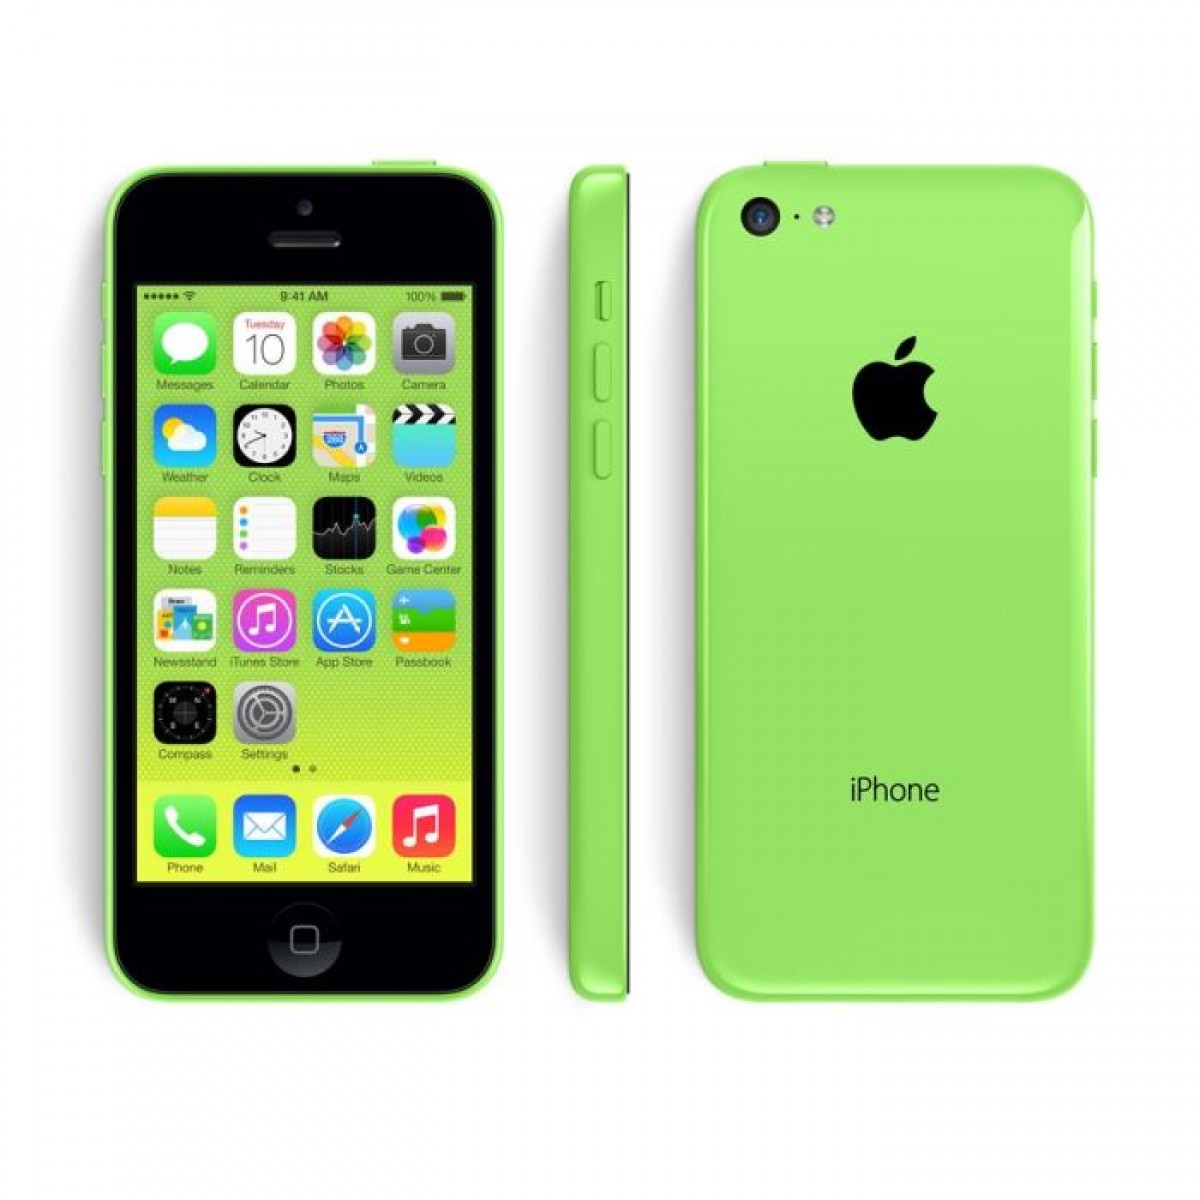 prix iphone 5 c occasion